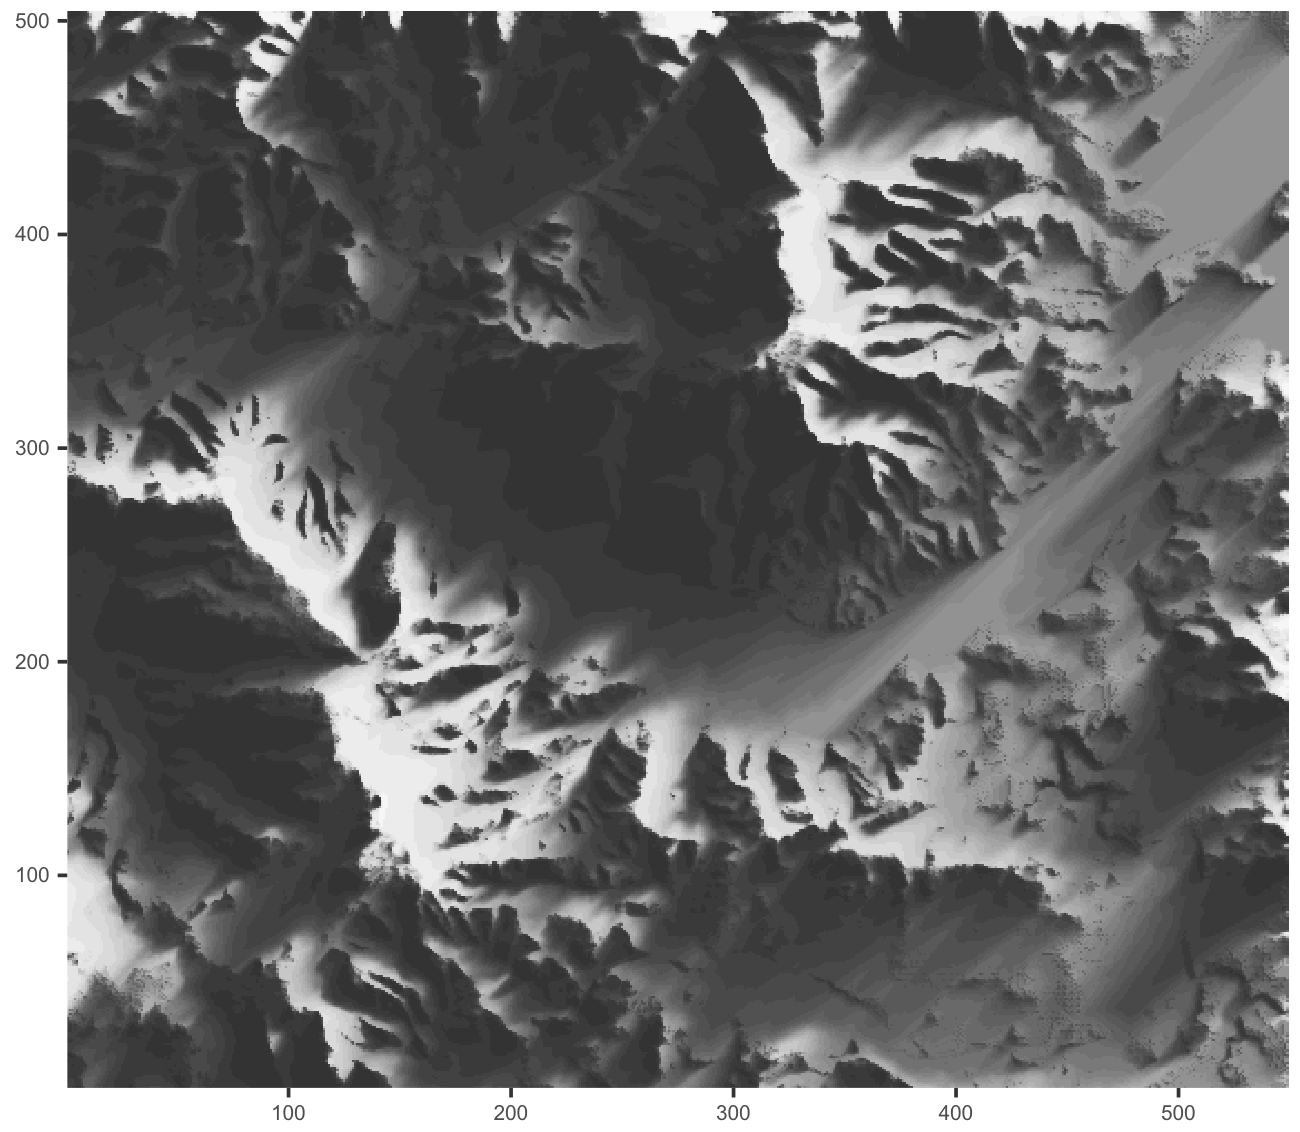 Fig. 1: Shaded mountains - vectorized R rendering